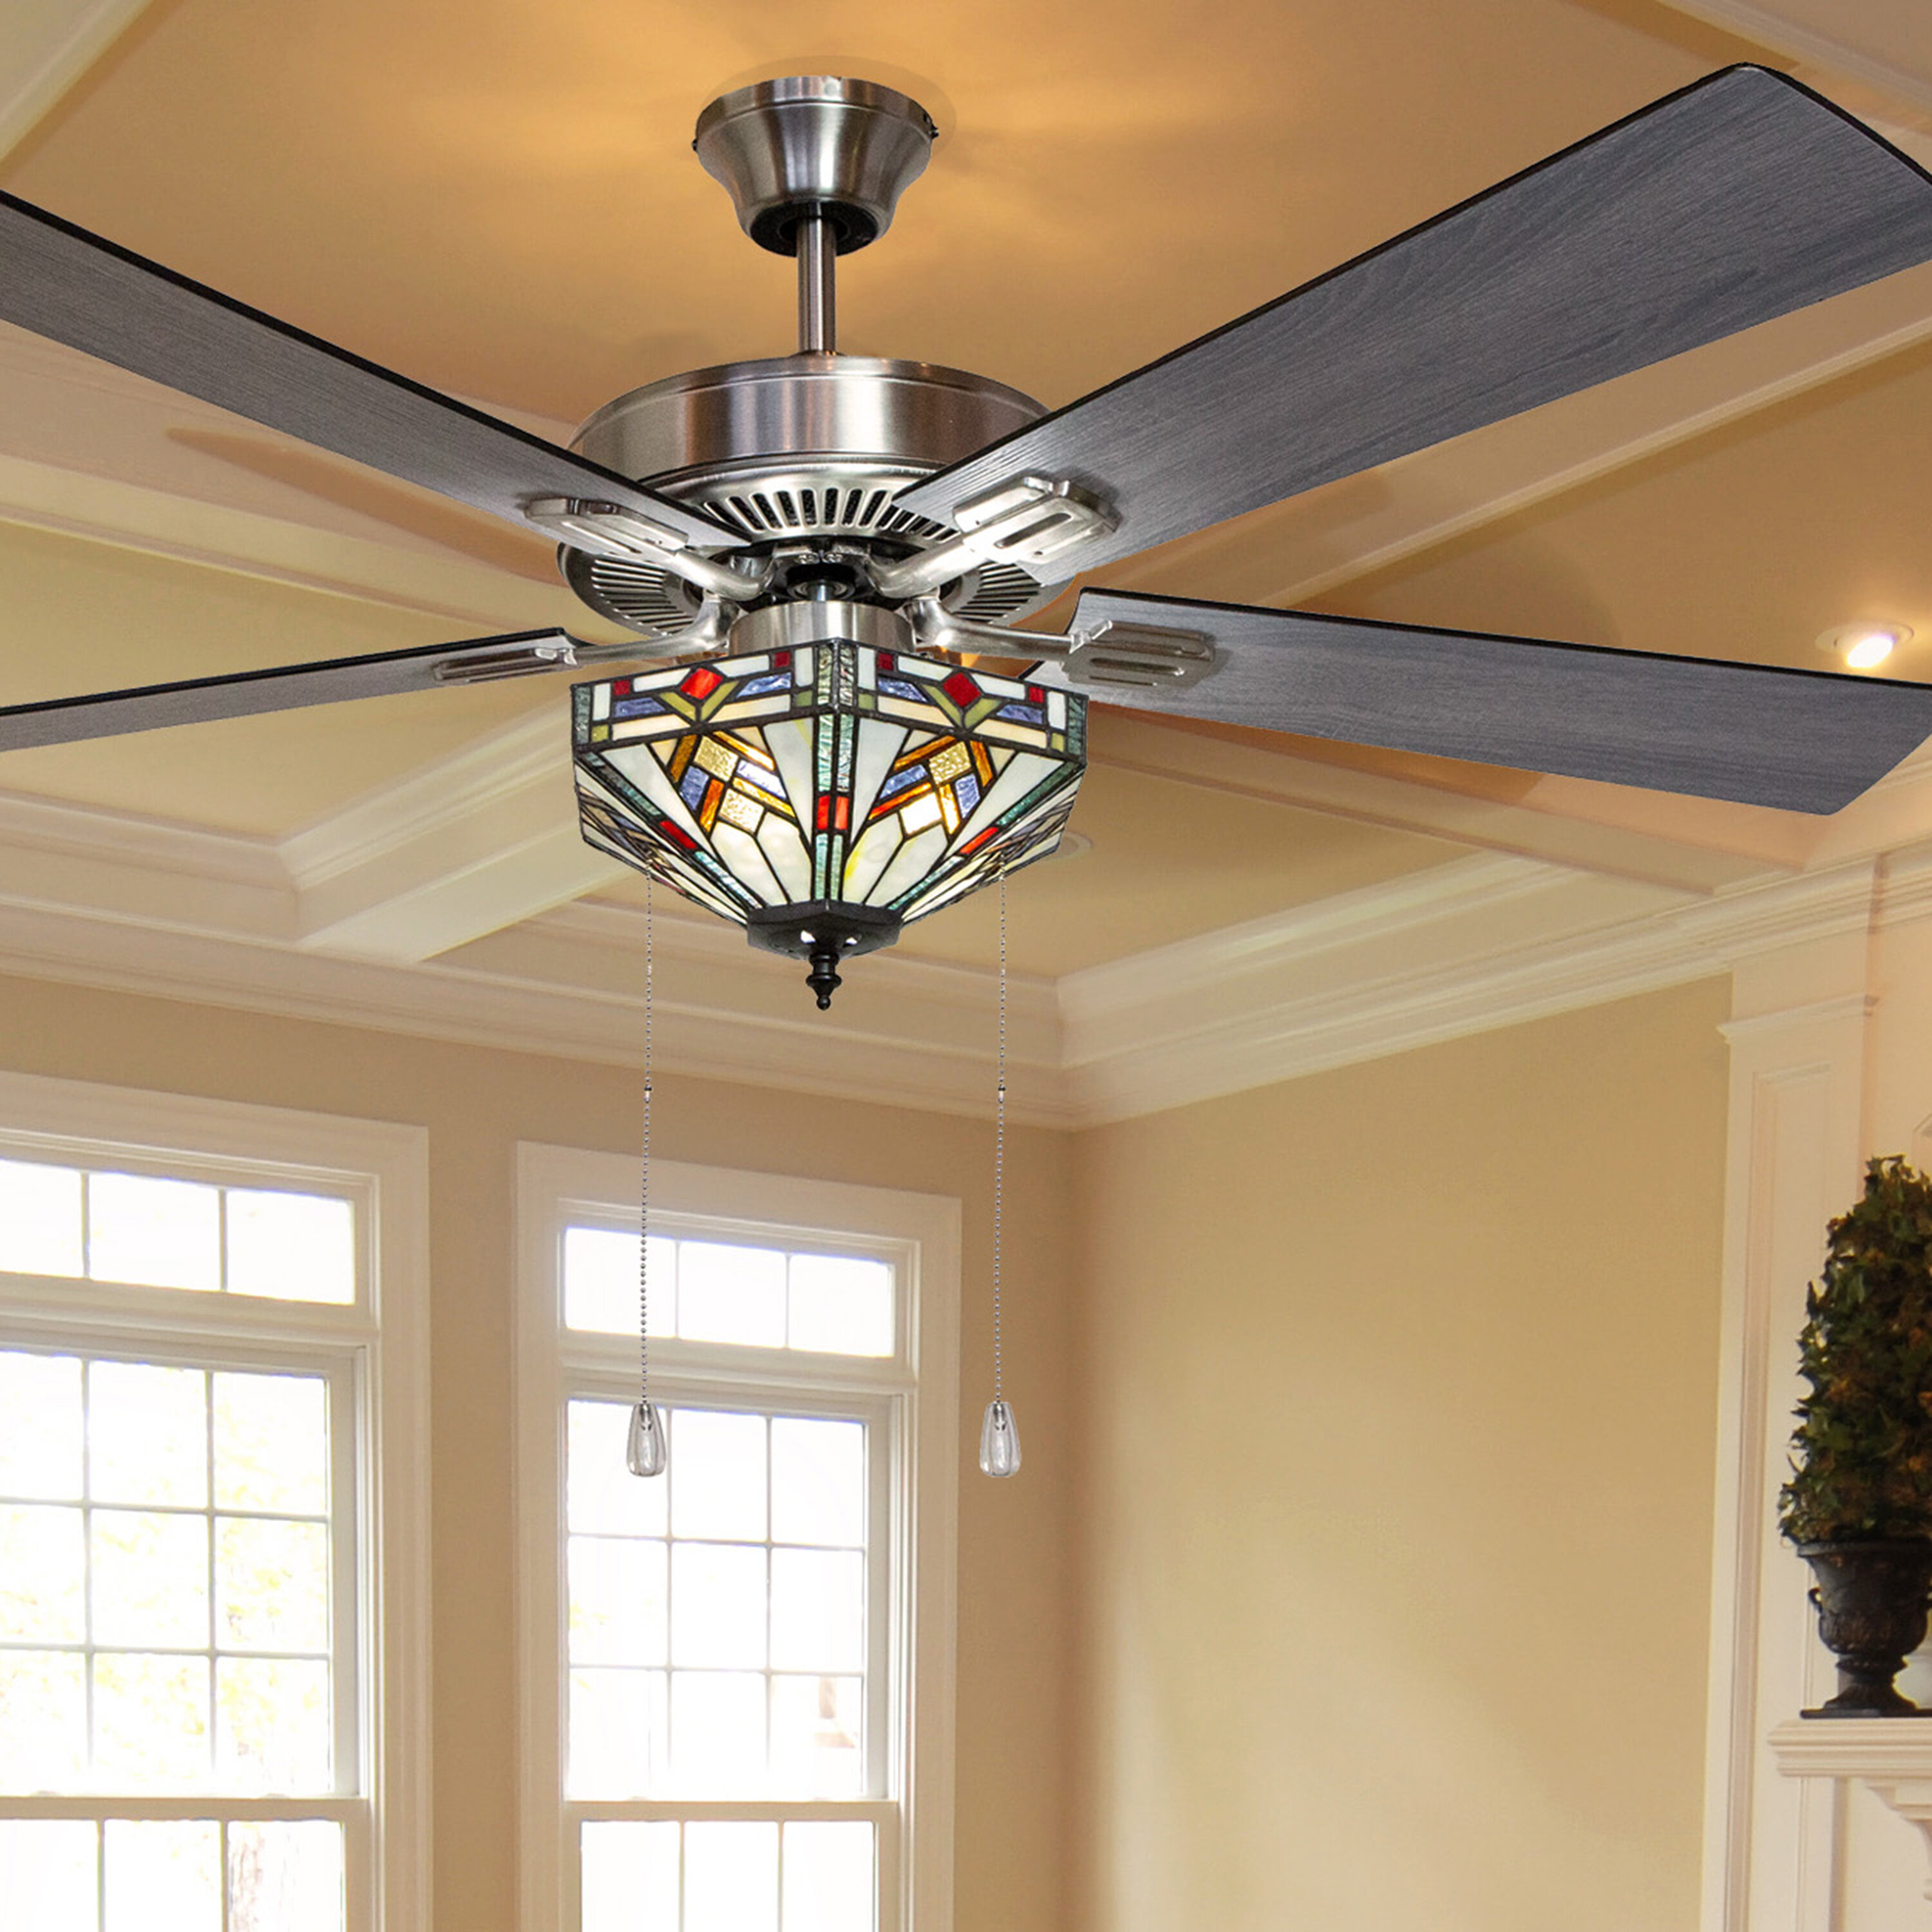 Millwood Pines 52 Londono Bungalow Mission Gl 5 Blade Ceiling Fan With Remote Light Kit Included Reviews Wayfair